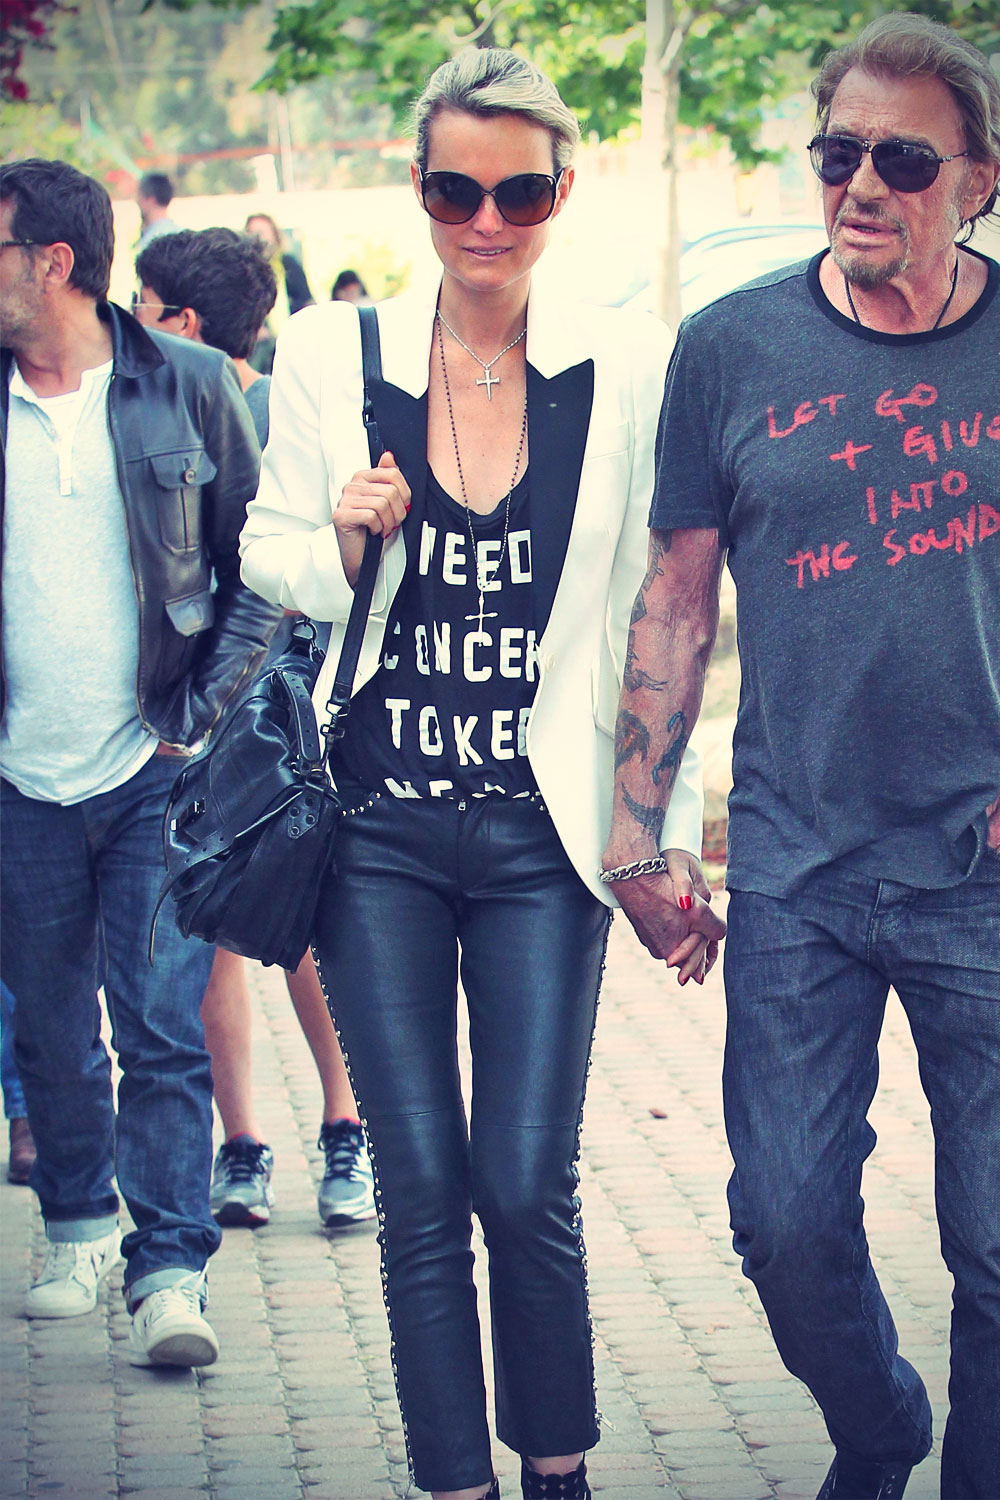 Laeticia Hallyday shopping with friends